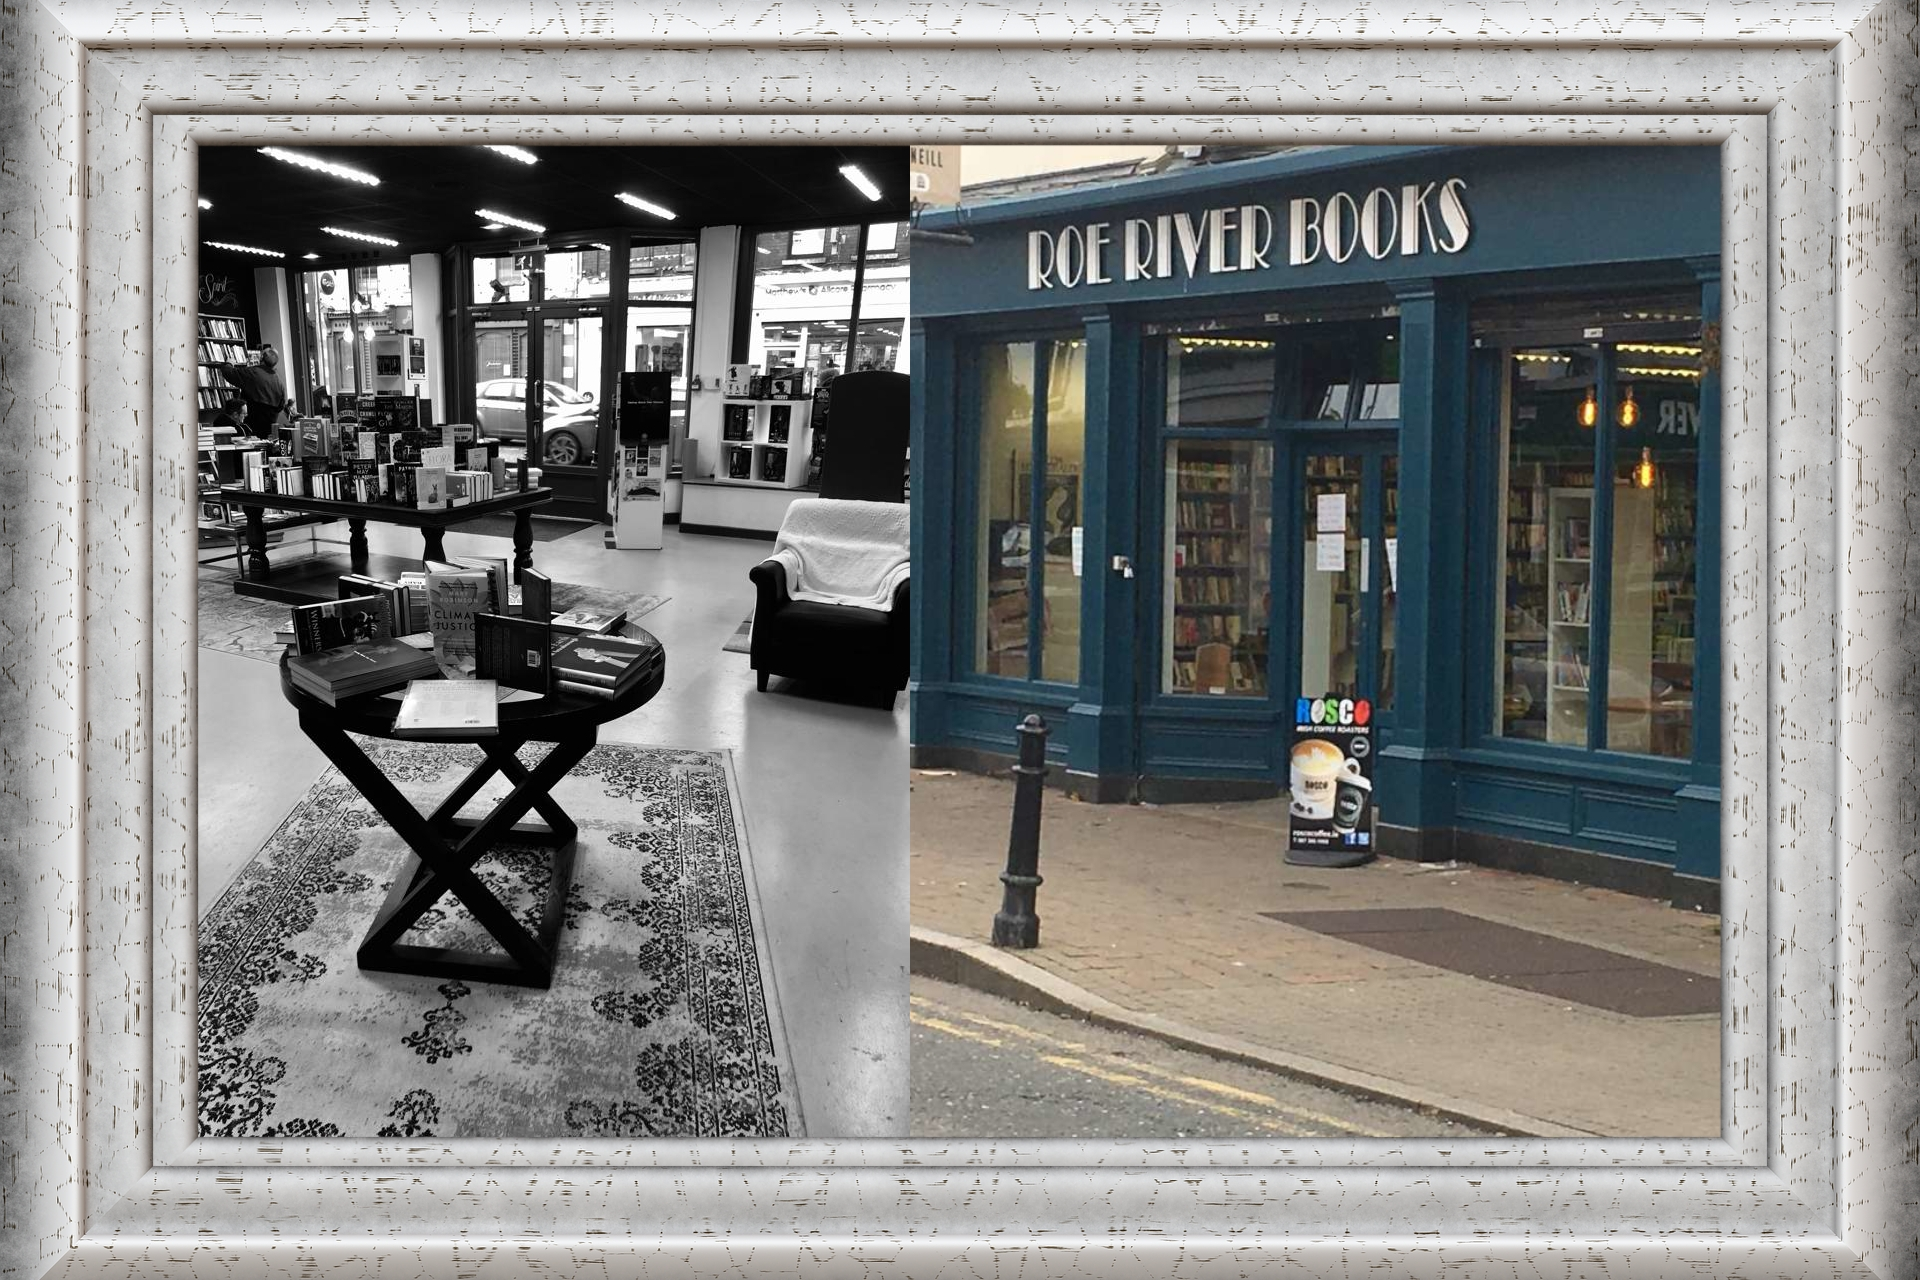 LoveReading Bookshop of the Month: Roe River Books (Dundalk)